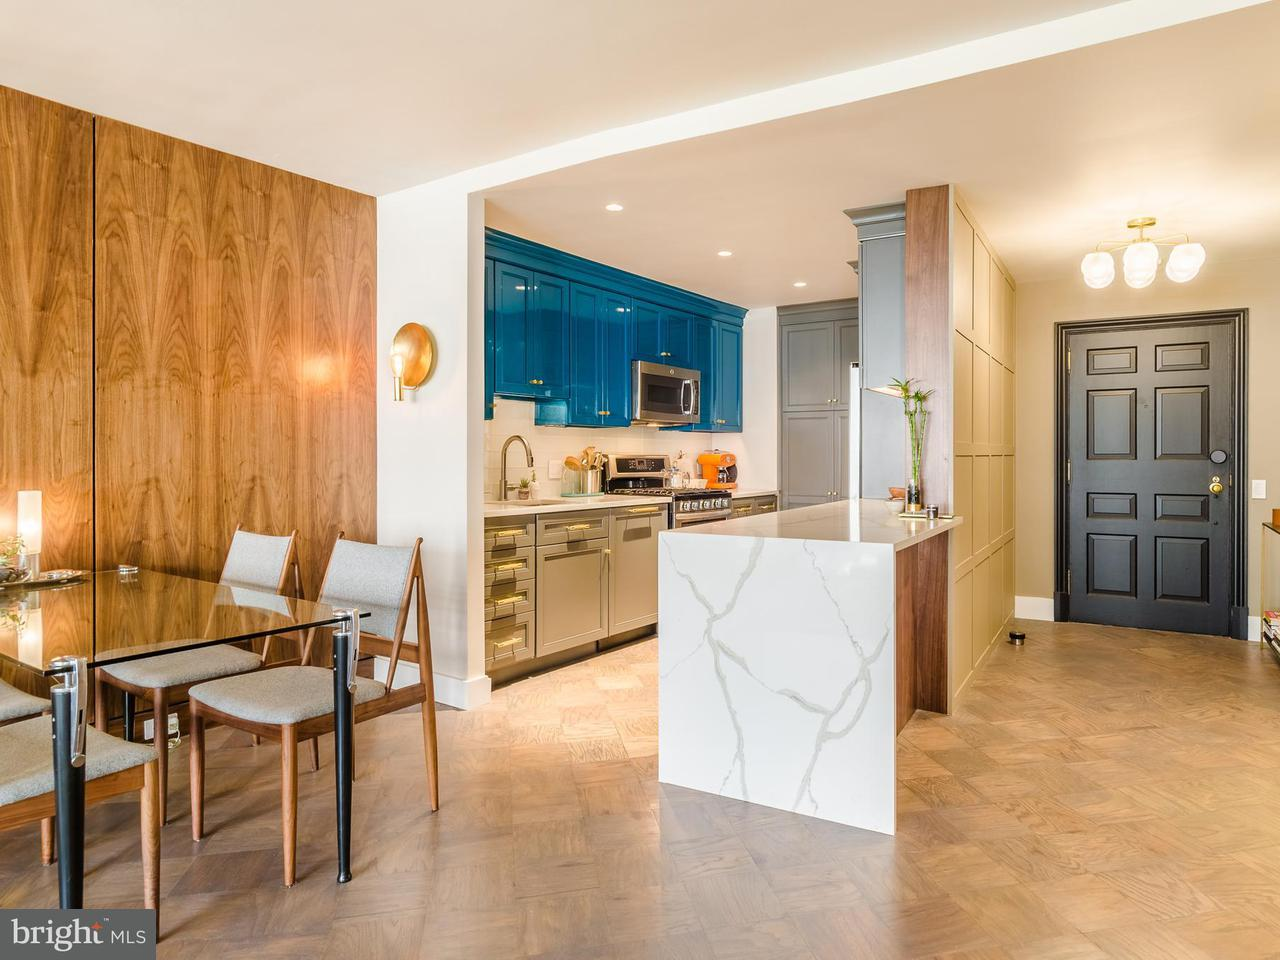 Condominium for Sale at 700 New Hampshire Ave NW #610 Washington, District Of Columbia 20037 United States